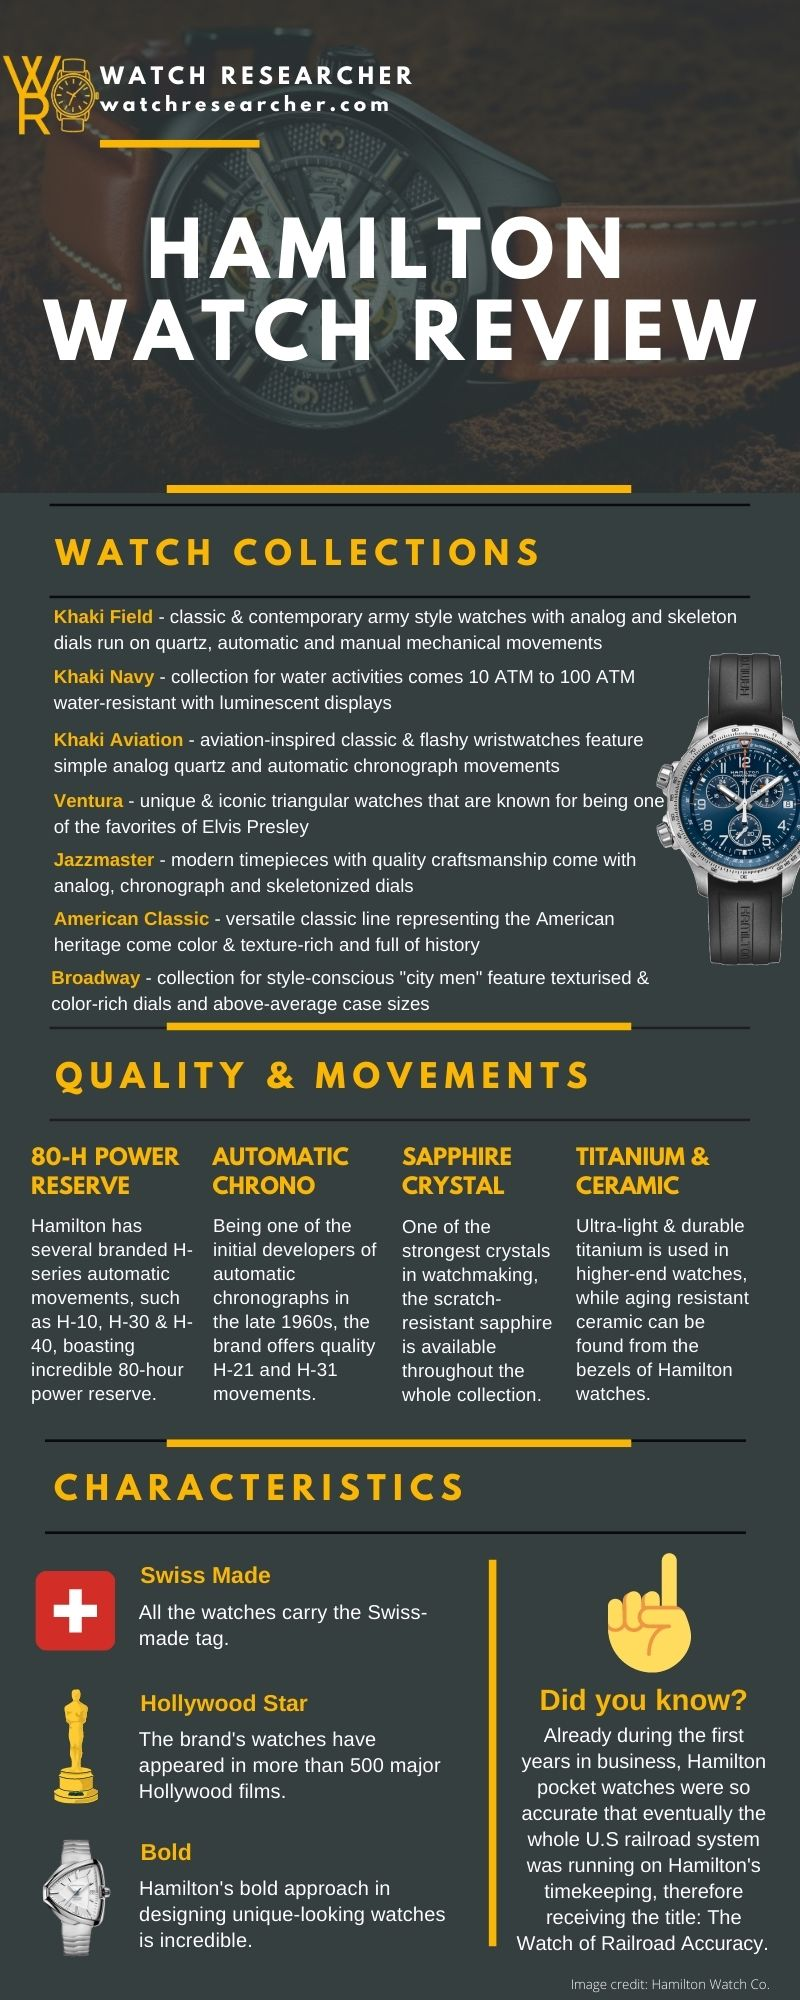 hamilton watches review thorough infographic